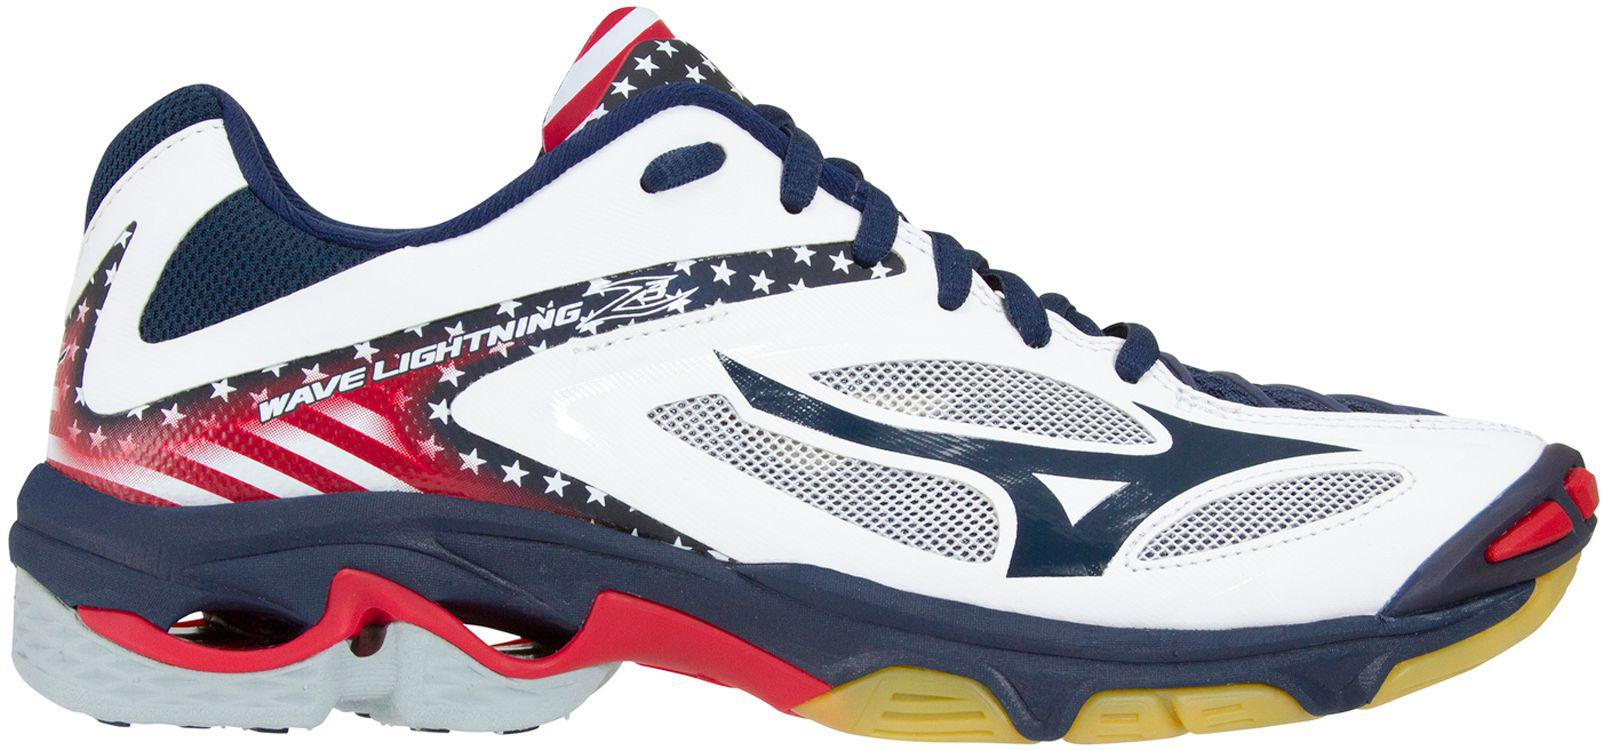 999d1ccdfe52 Mizuno - Multicolor Wave Lightning Z3 Stars And Stripes Volleyball Shoes -  Lyst